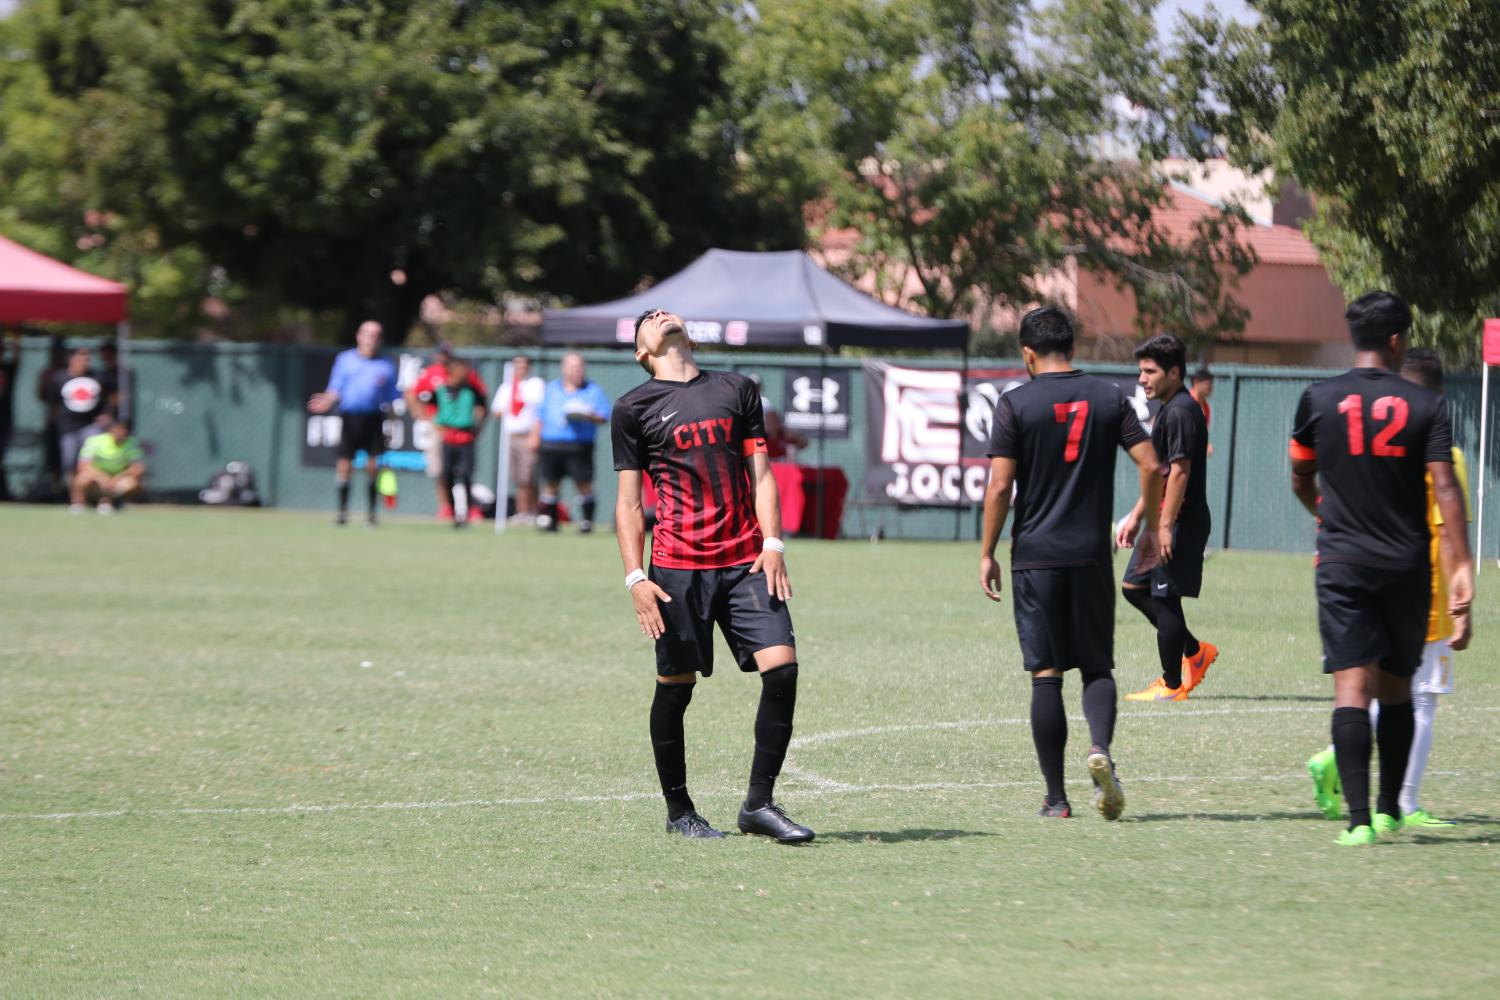 Ram's men's soccer players show their frustration after not being able to keep the lead during a tied game against Cañada College at home on Saturday, Sept. 16, 2017.